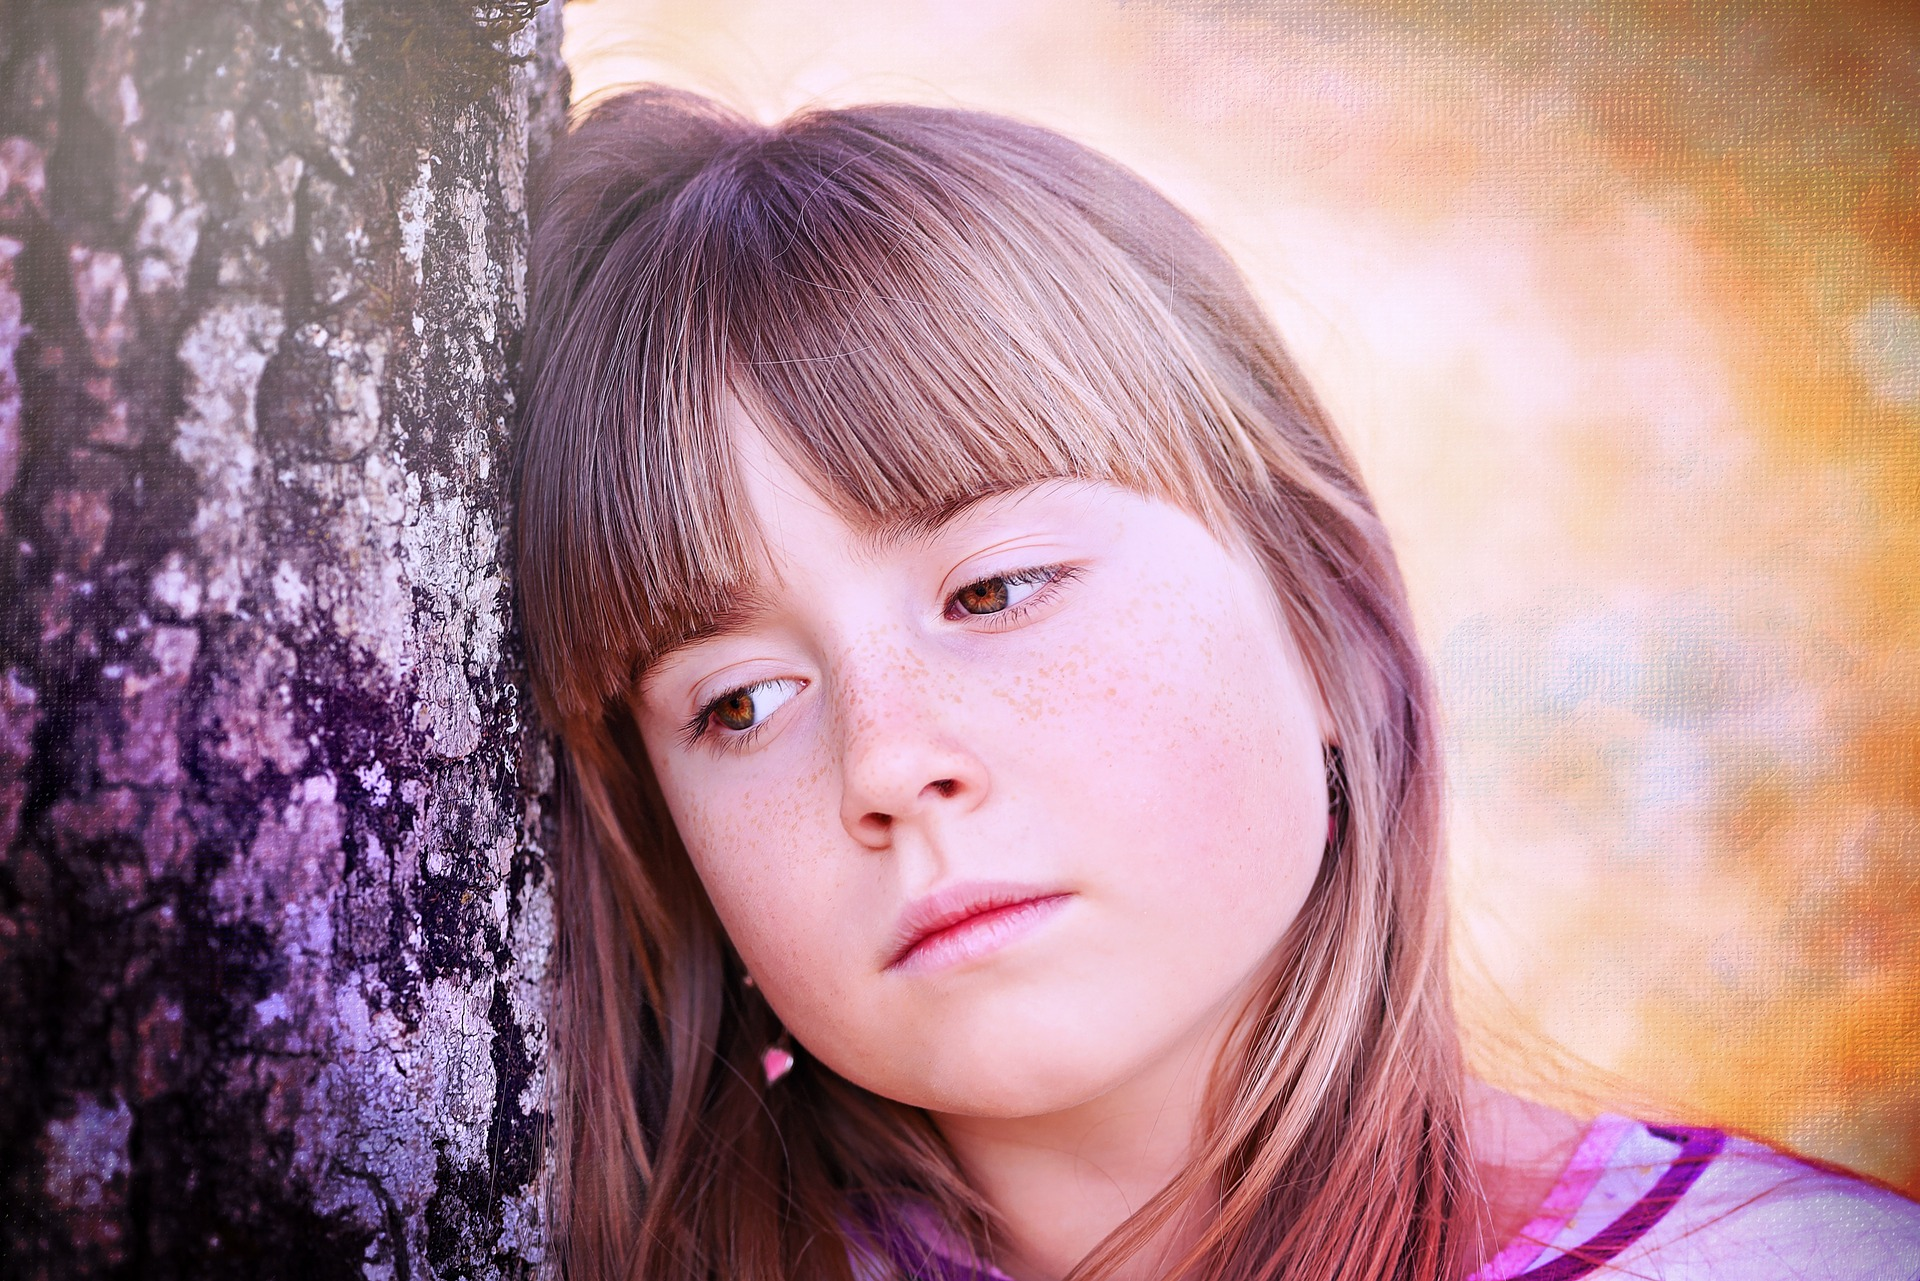 DEHYDRATION IN CHILDREN – WHAT TO LOOK OUT FOR